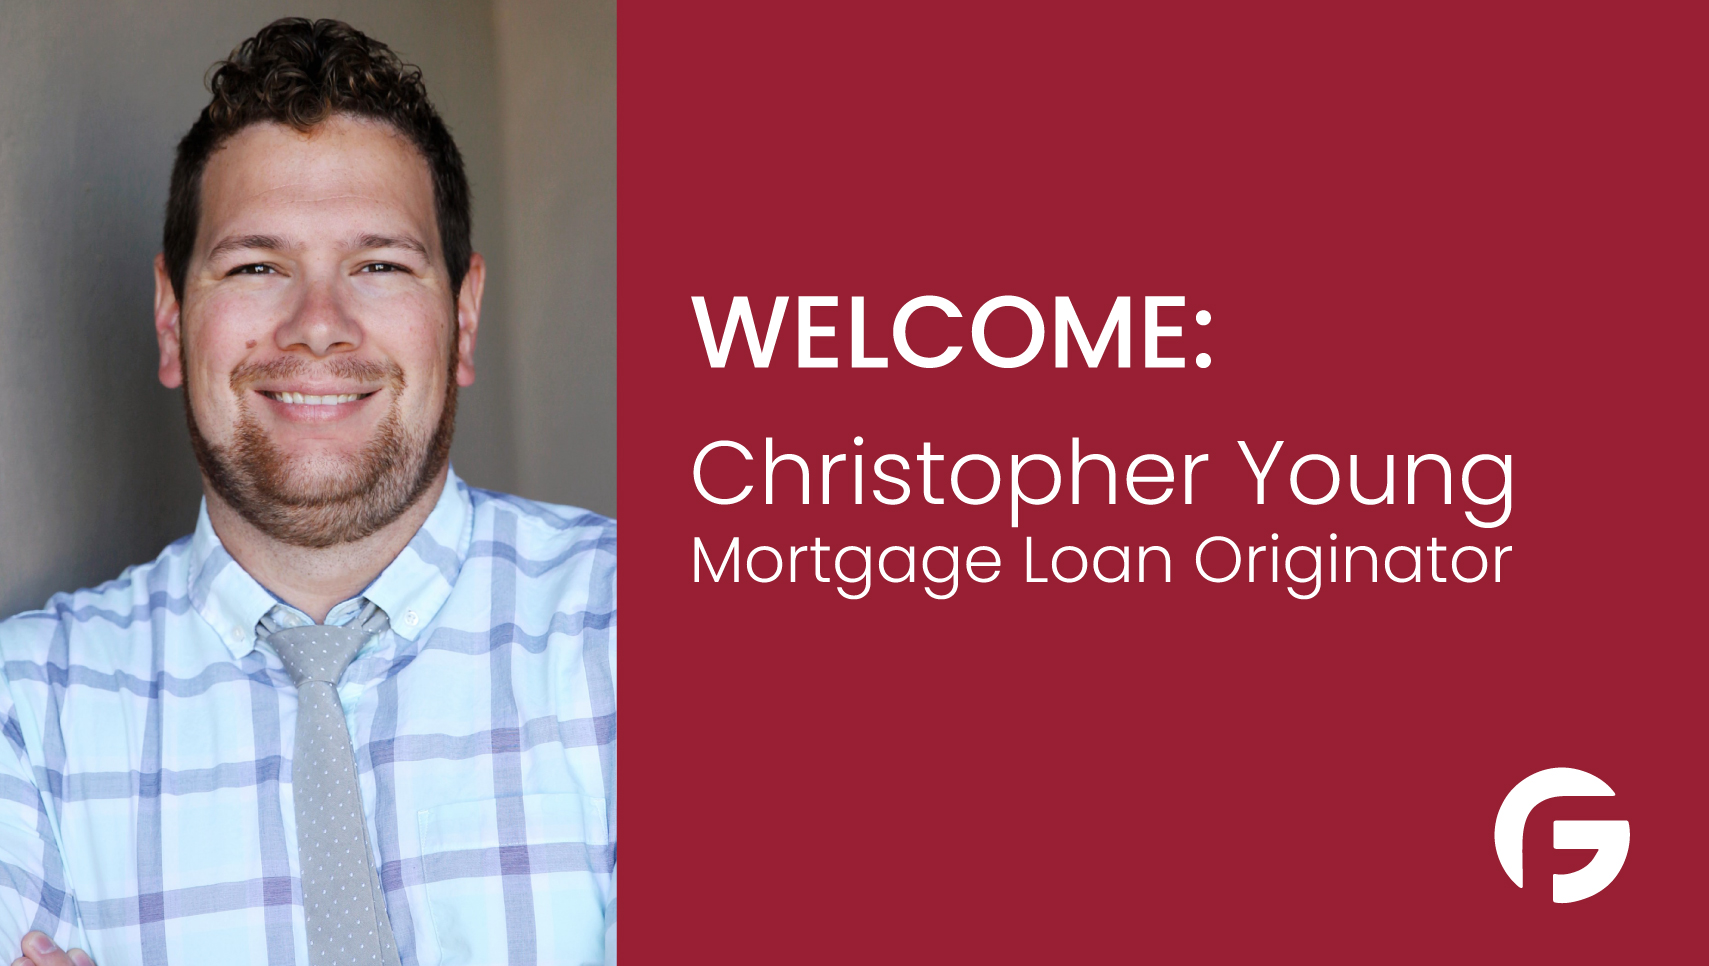 Christopher Young, Loan Officer, serving the state of Utah